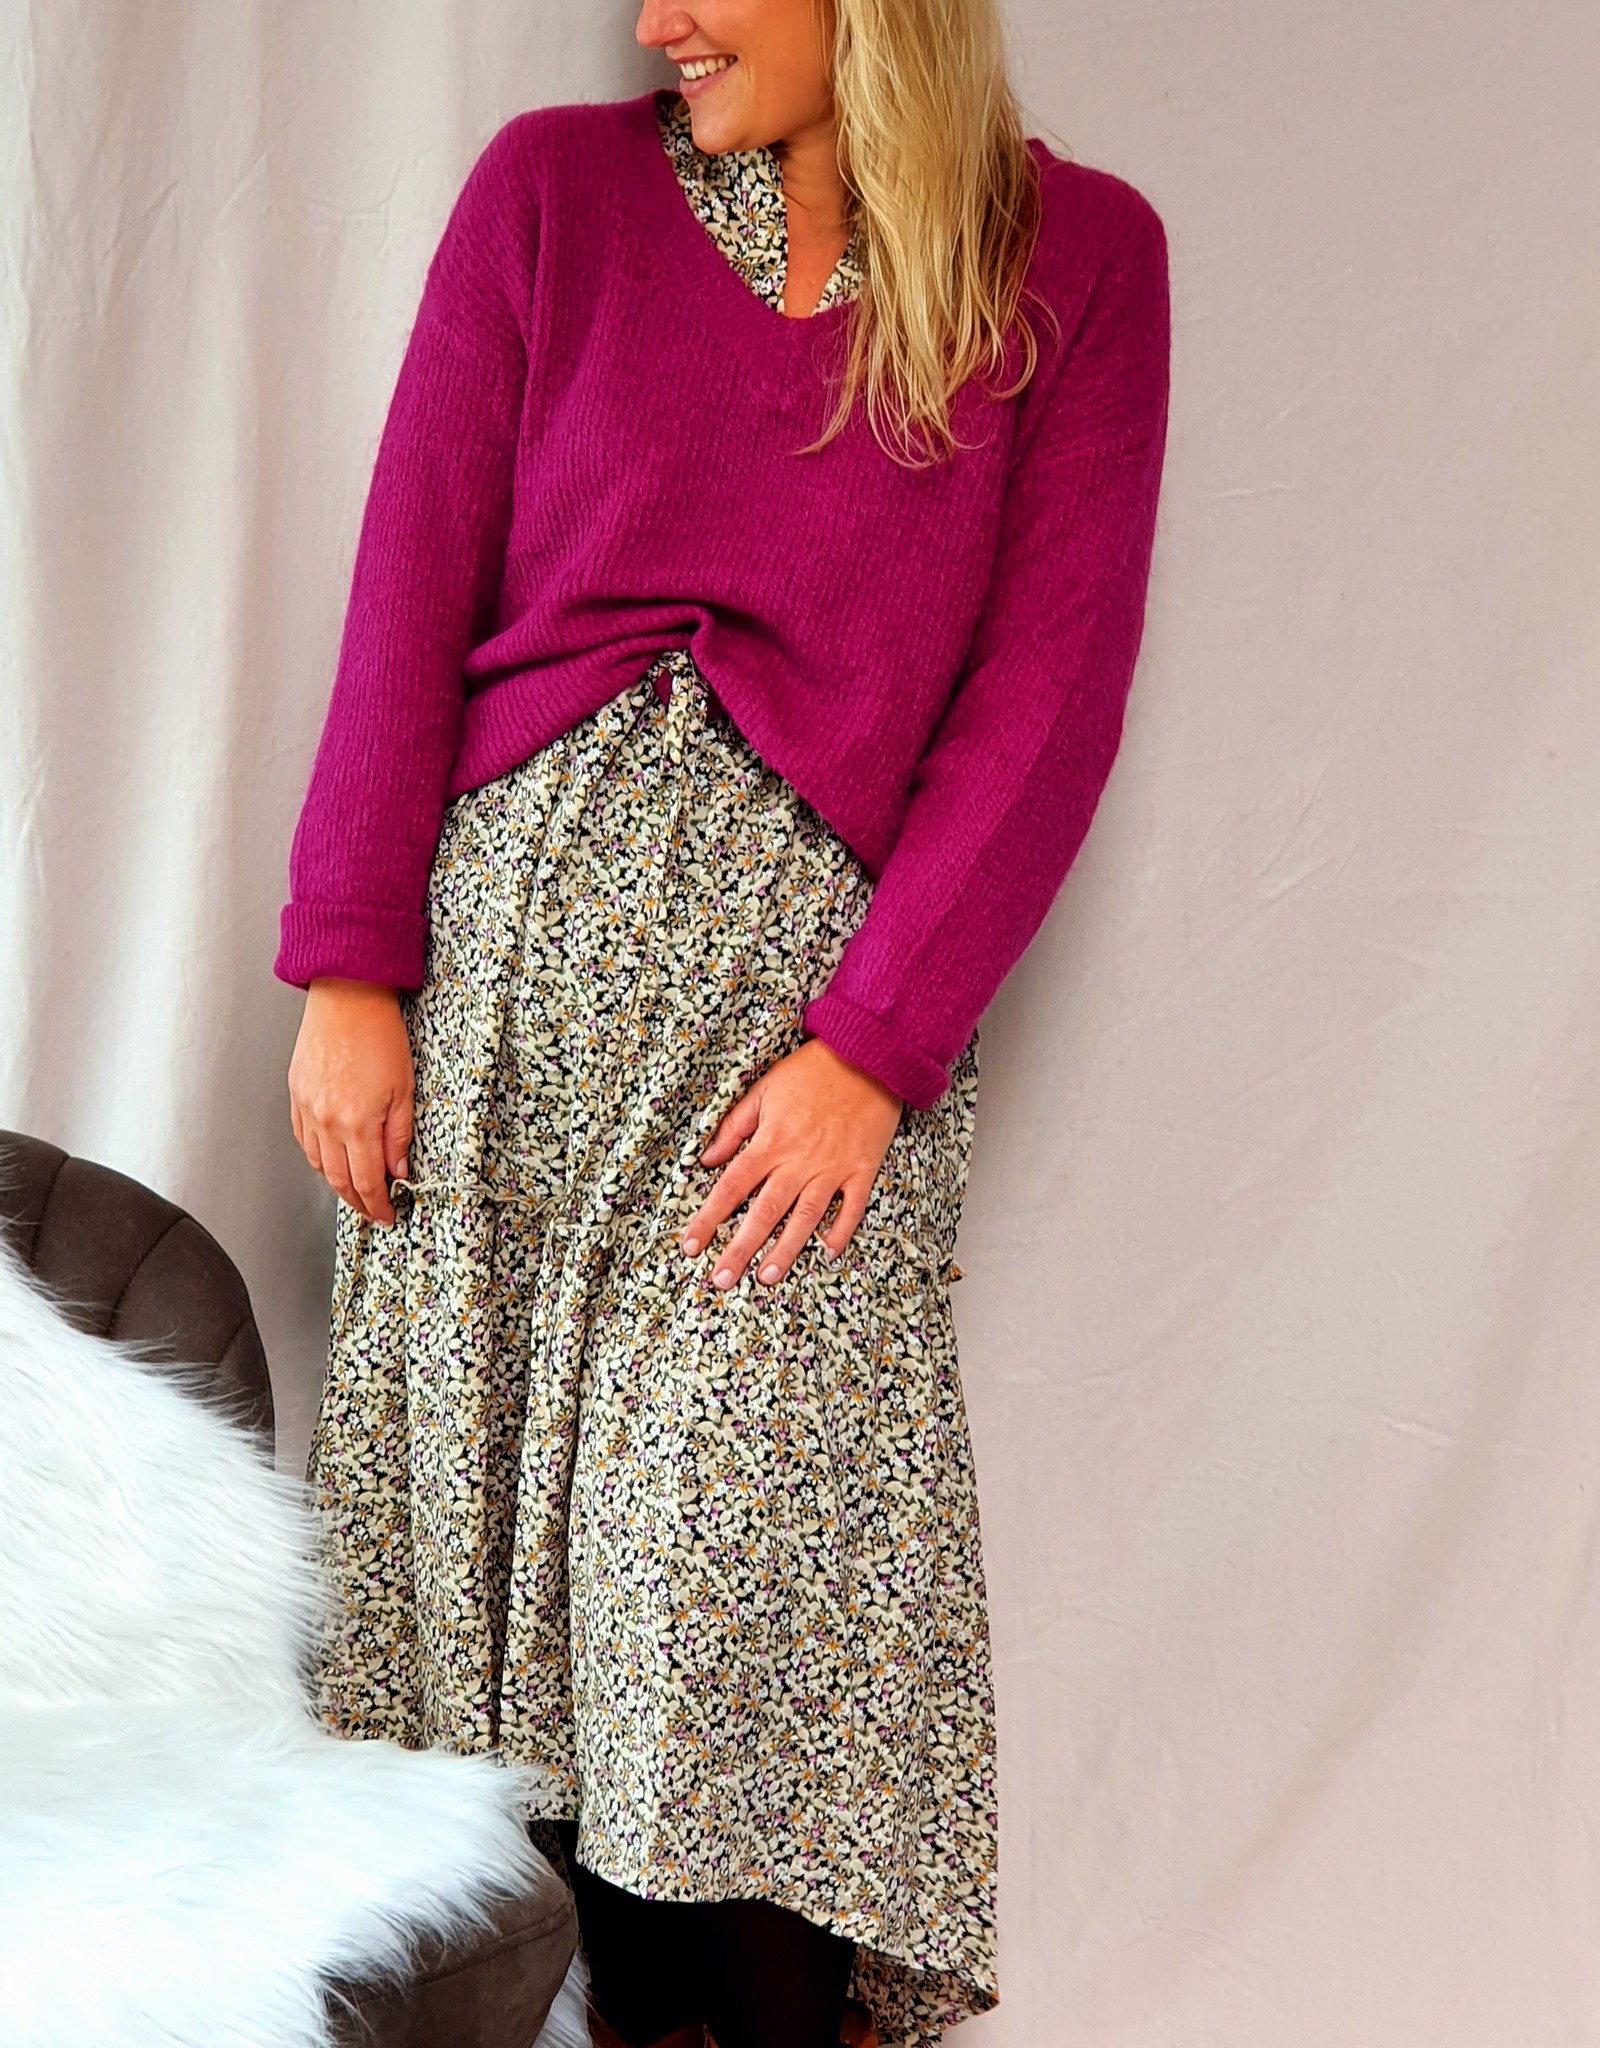 Autumn flower dress with a touch of purple